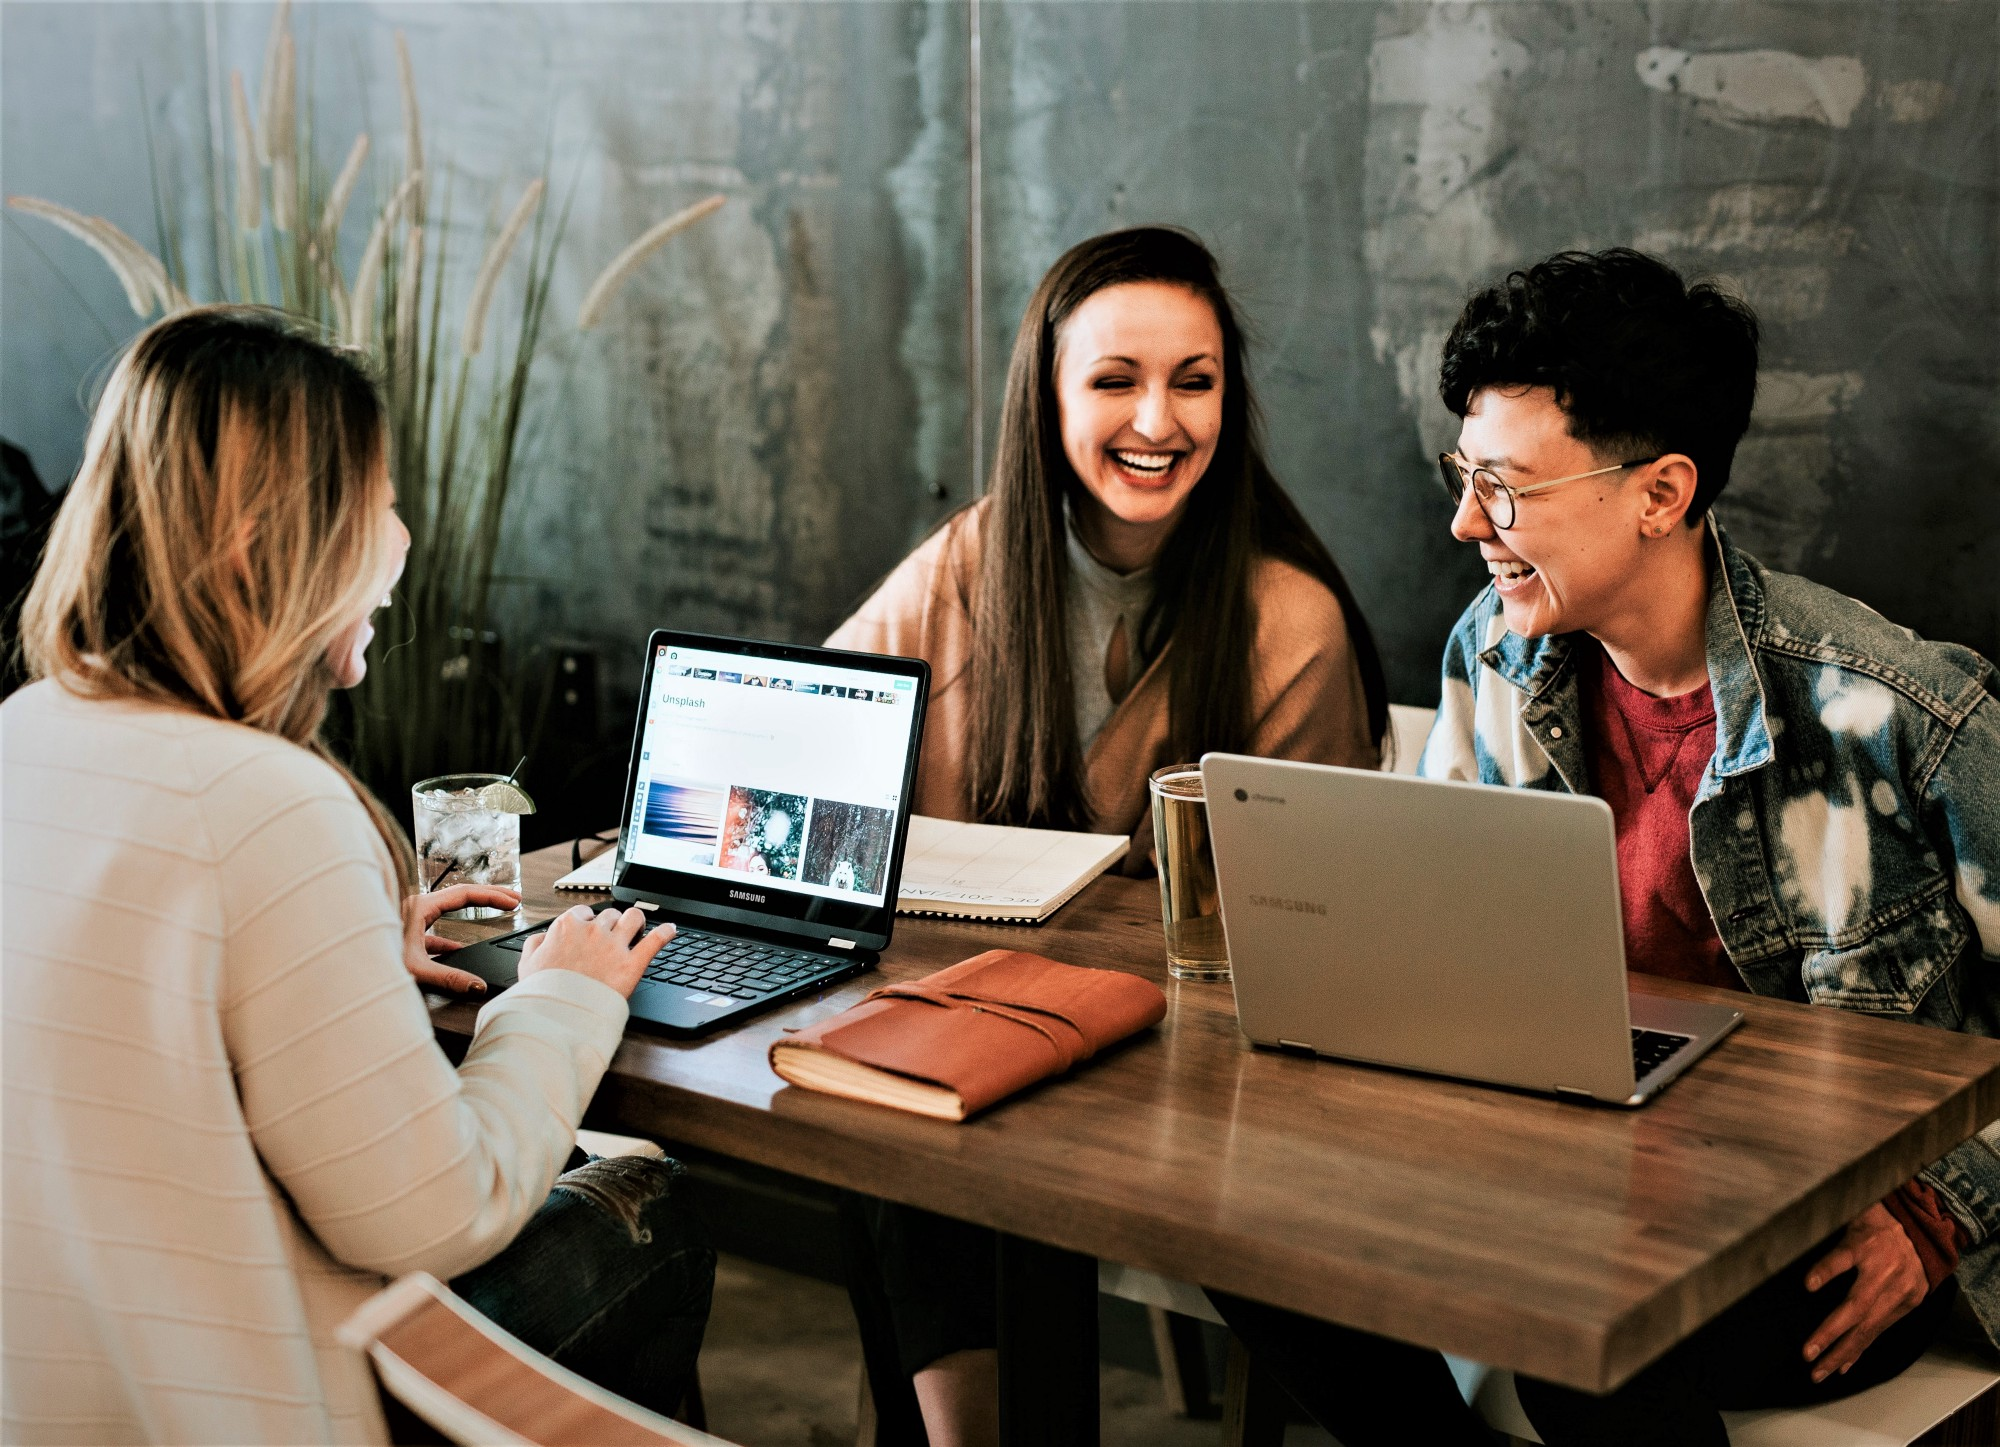 three young adults sitting around wooden table with computer laughing, smiling, and talking